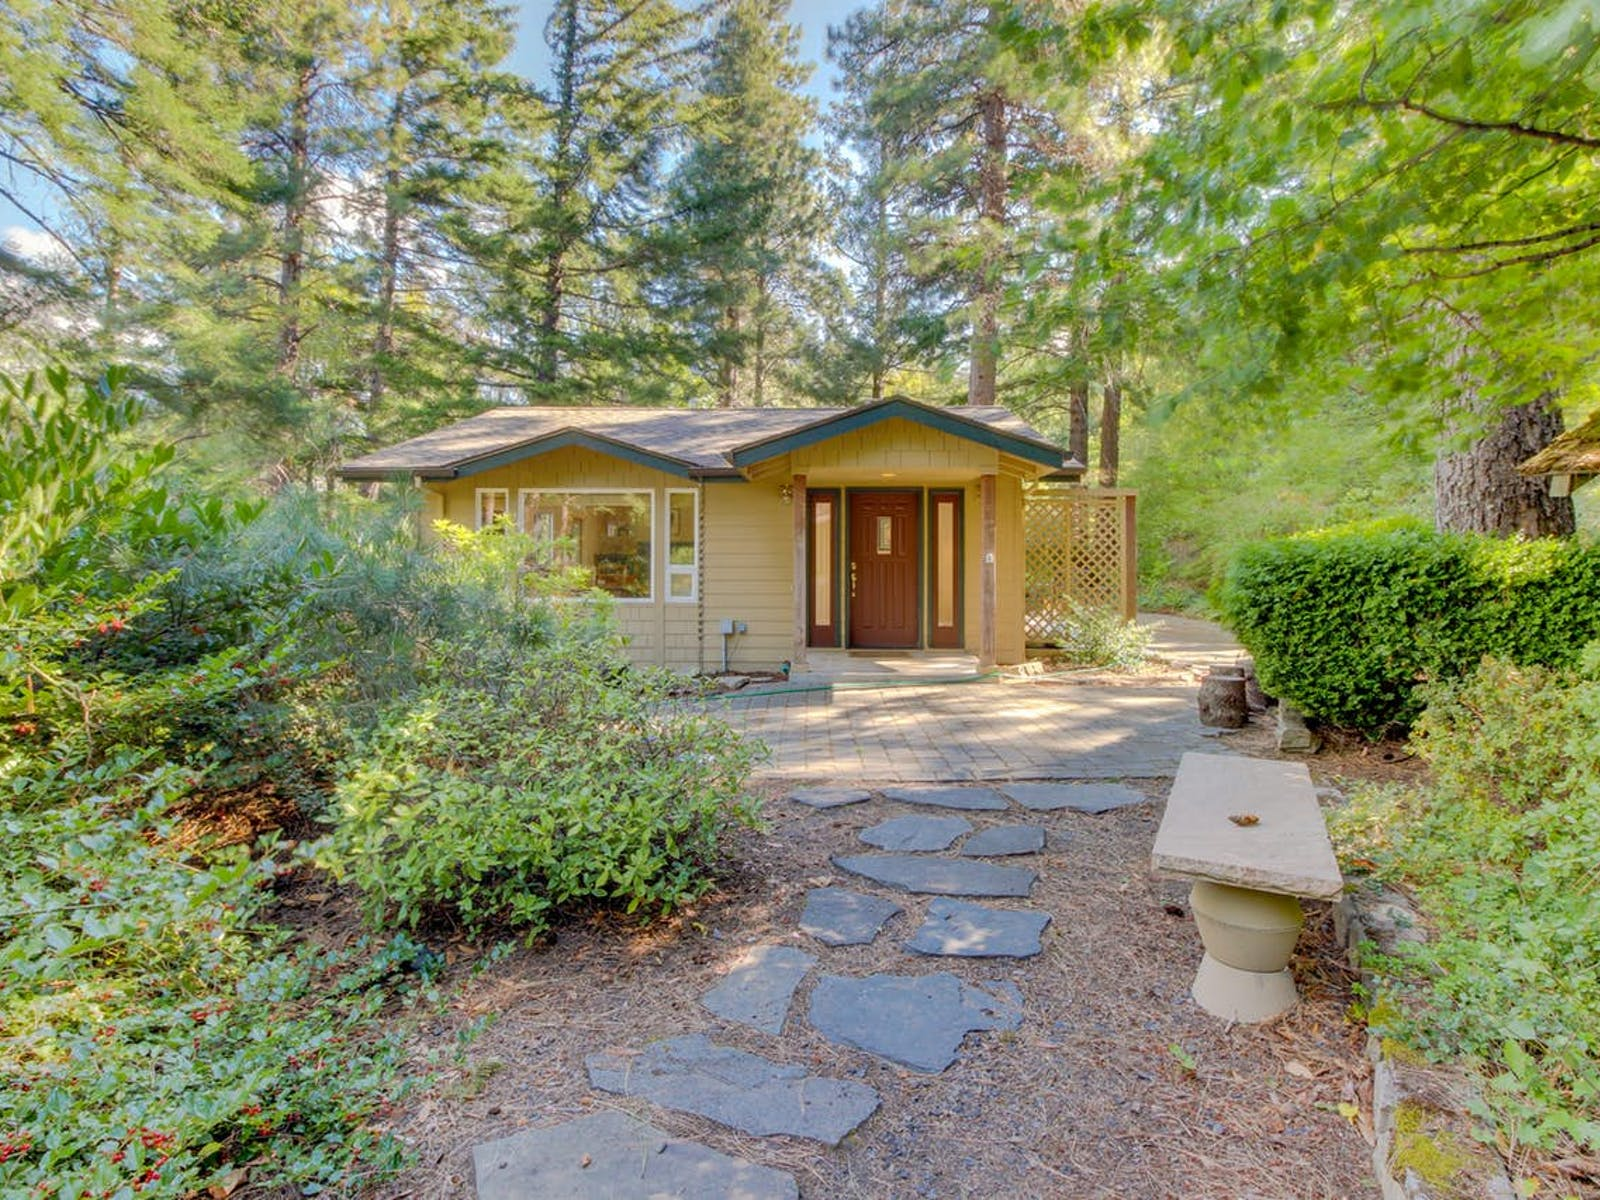 Vacation rental in Hood River, OR surrounded by woods